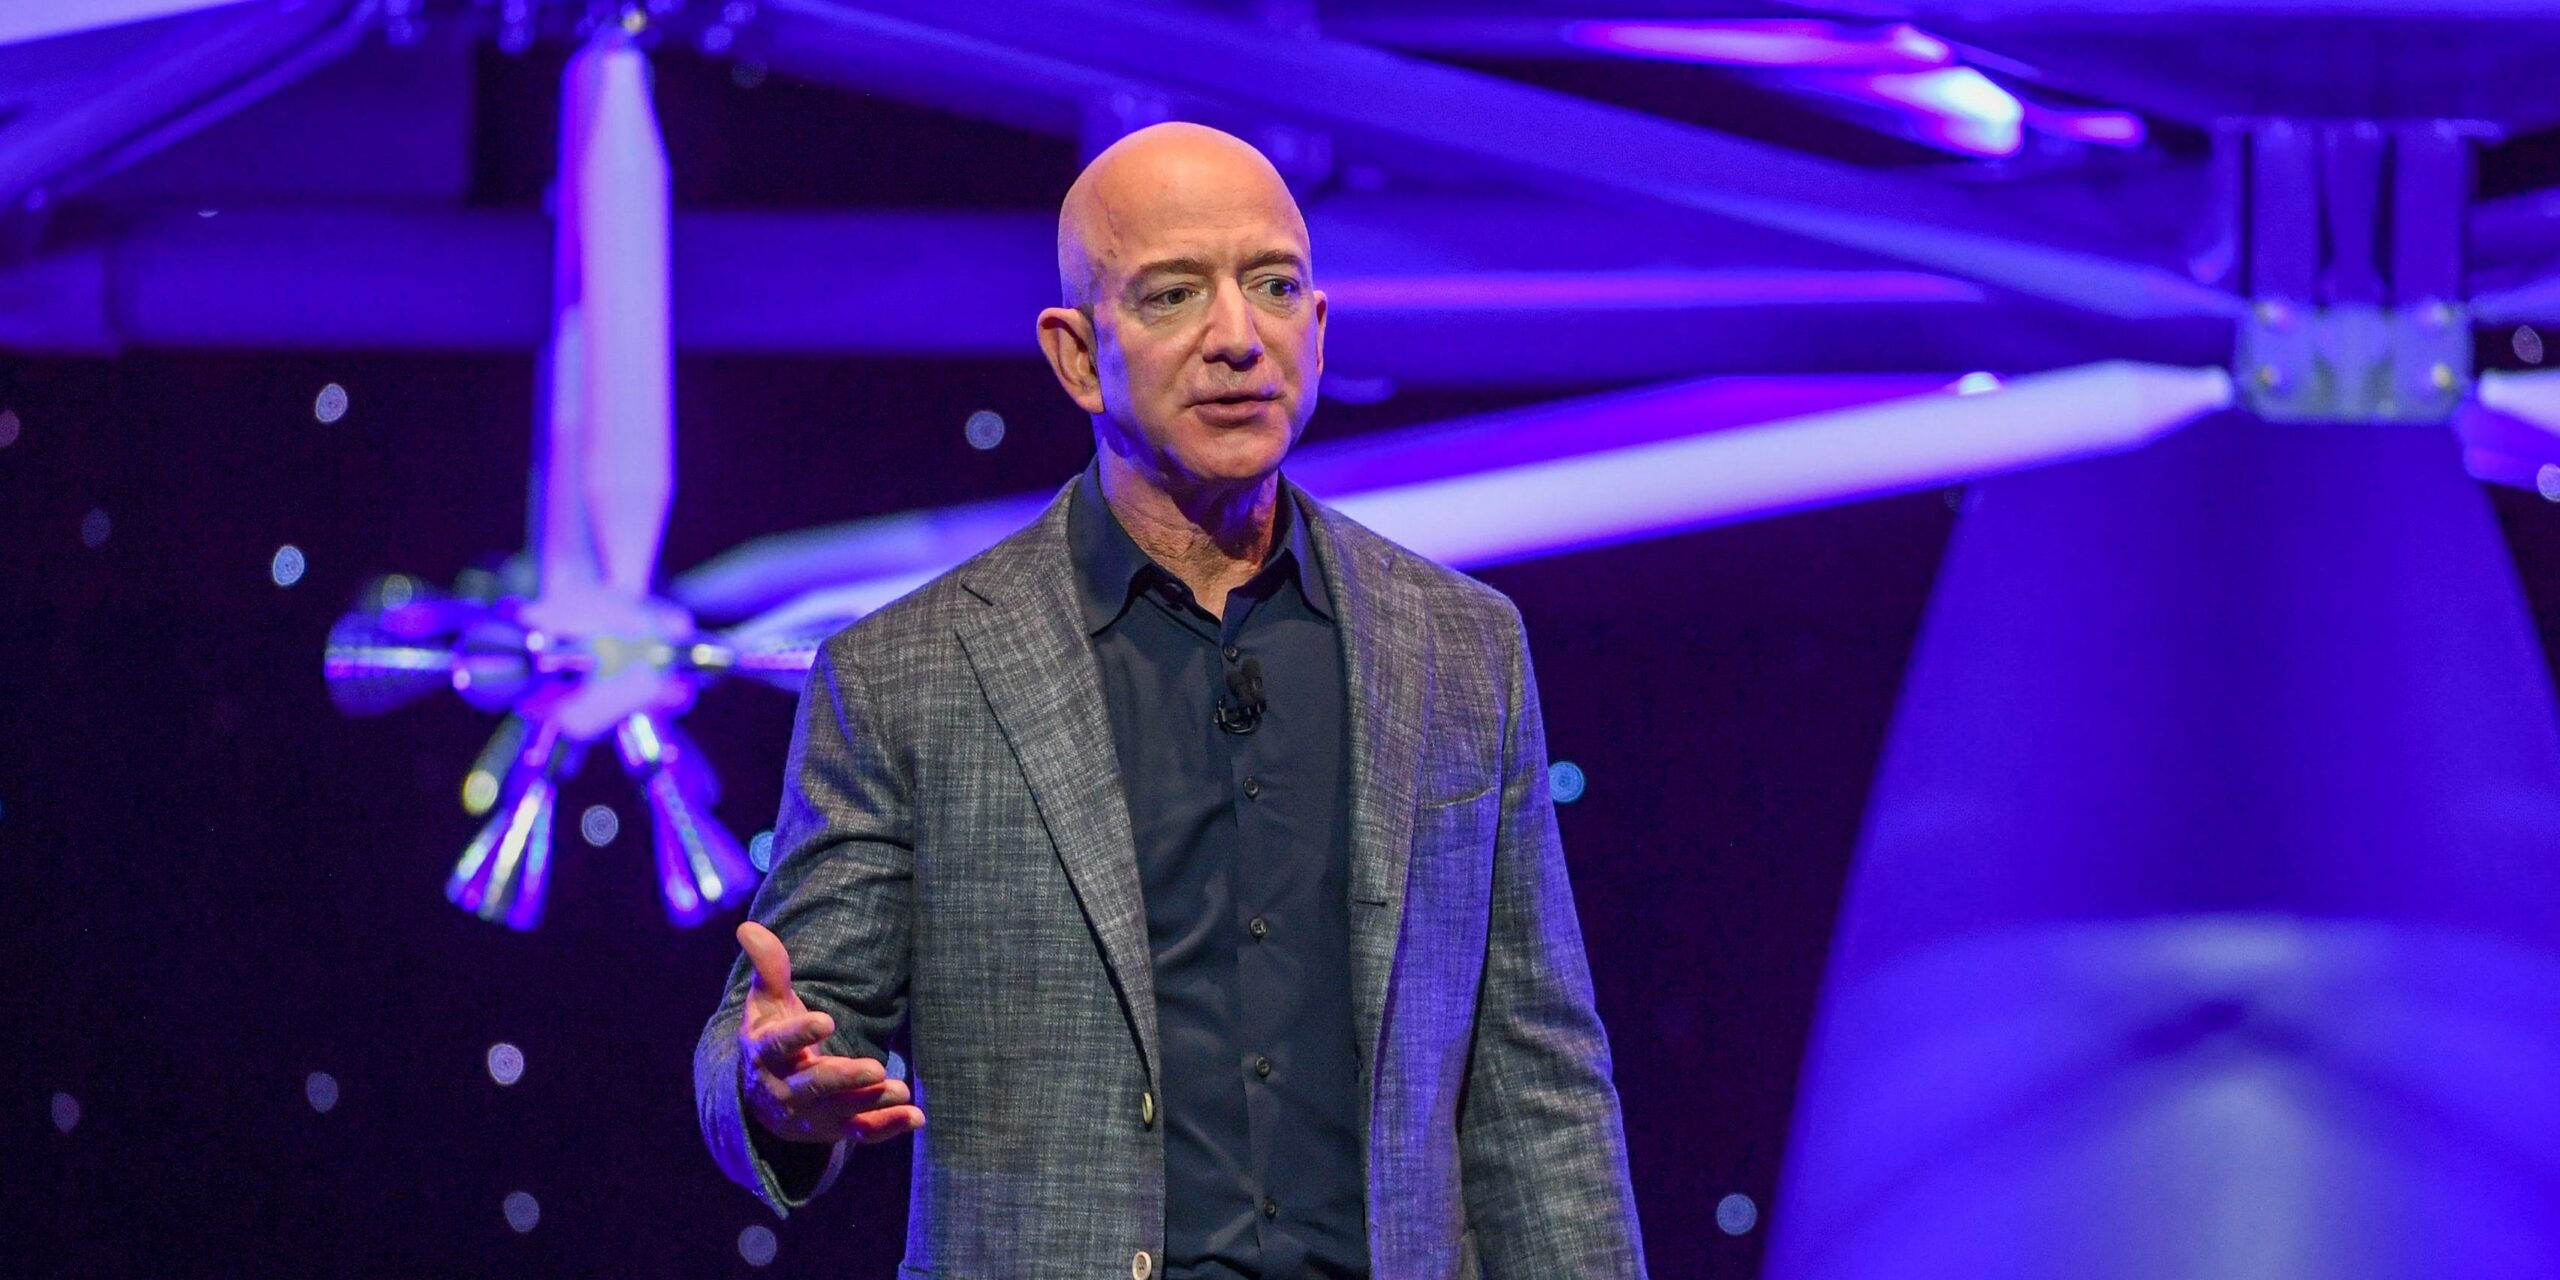 Jeff Bezos offers a vision of flying through space colonies with our own wings. But is that the best way to save the human race?